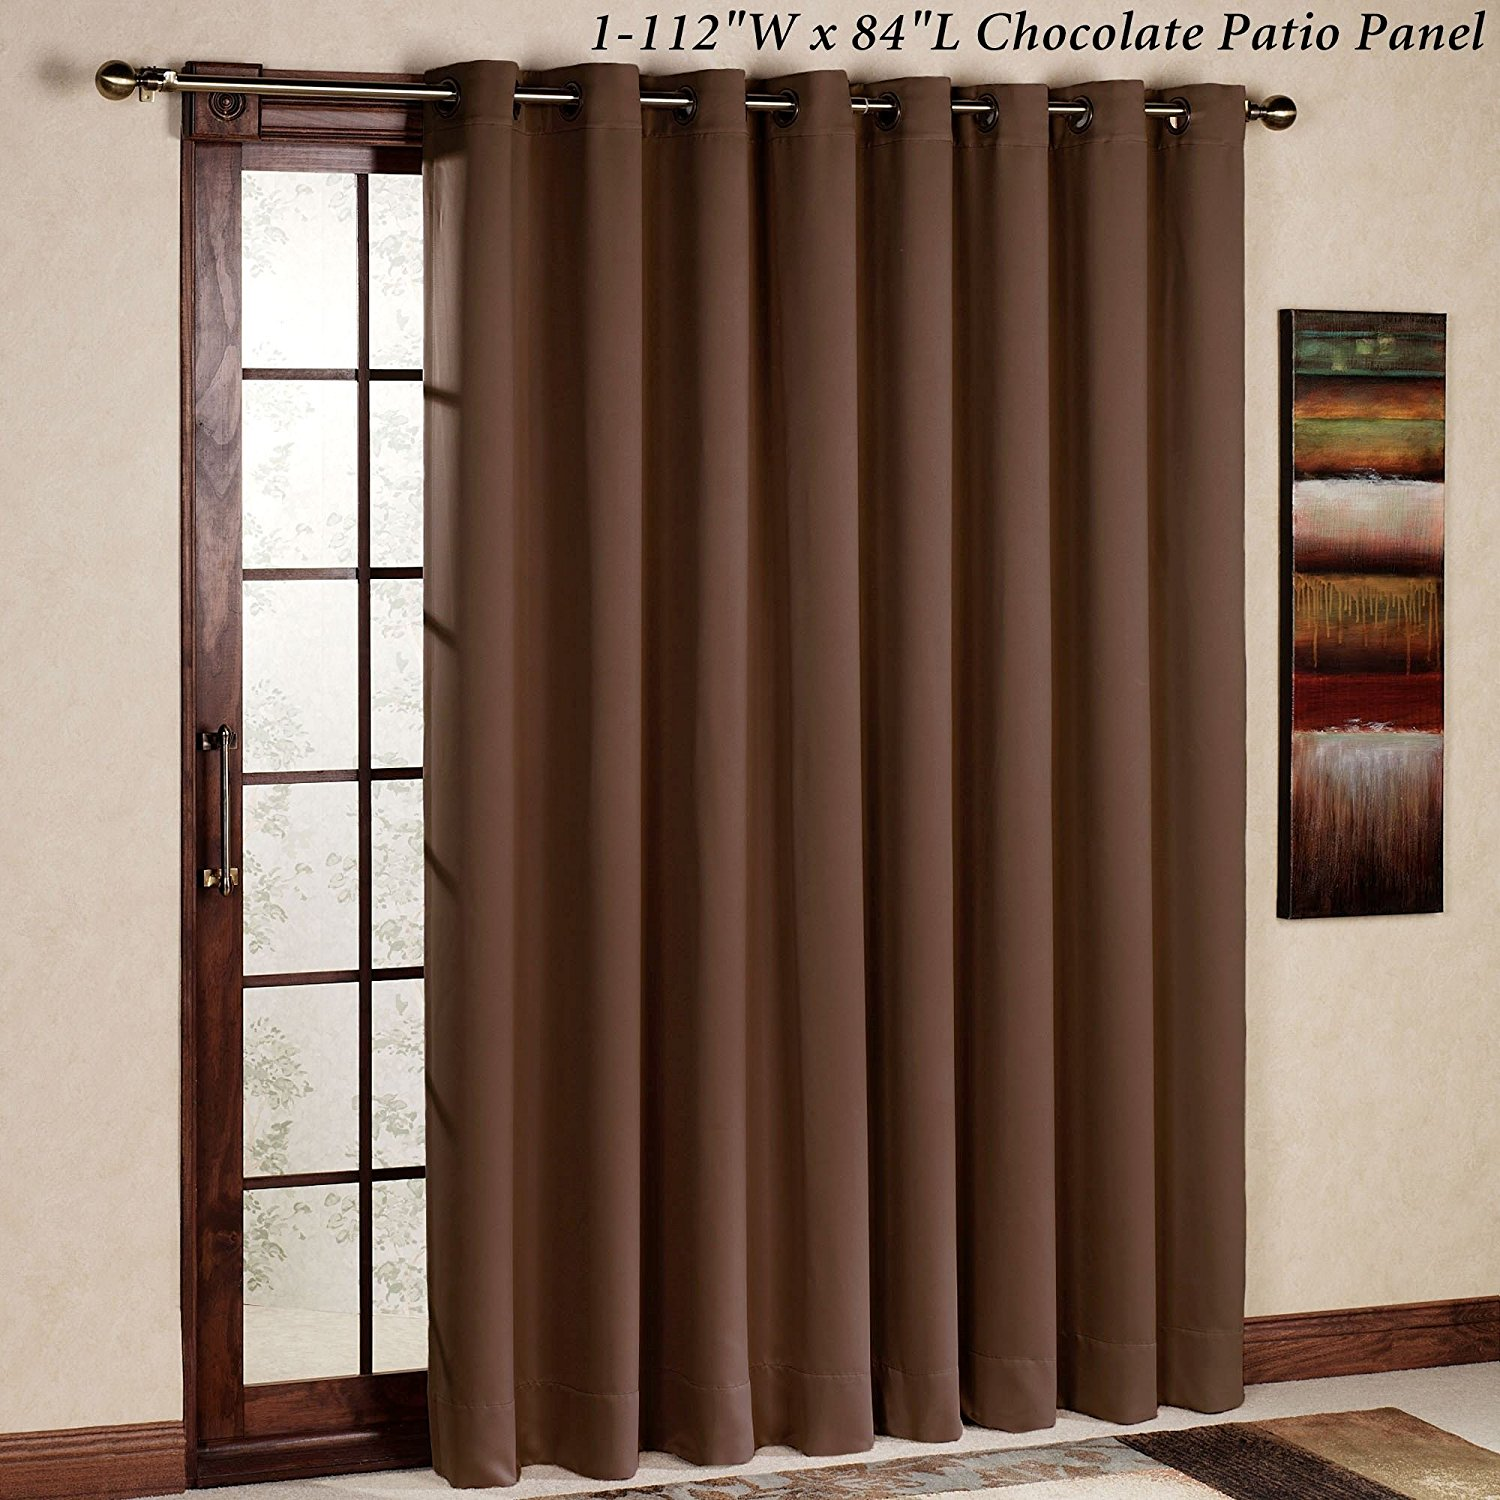 Thermal Insulated Curtains | Lined Thermal Curtains | Thermal Window Coverings